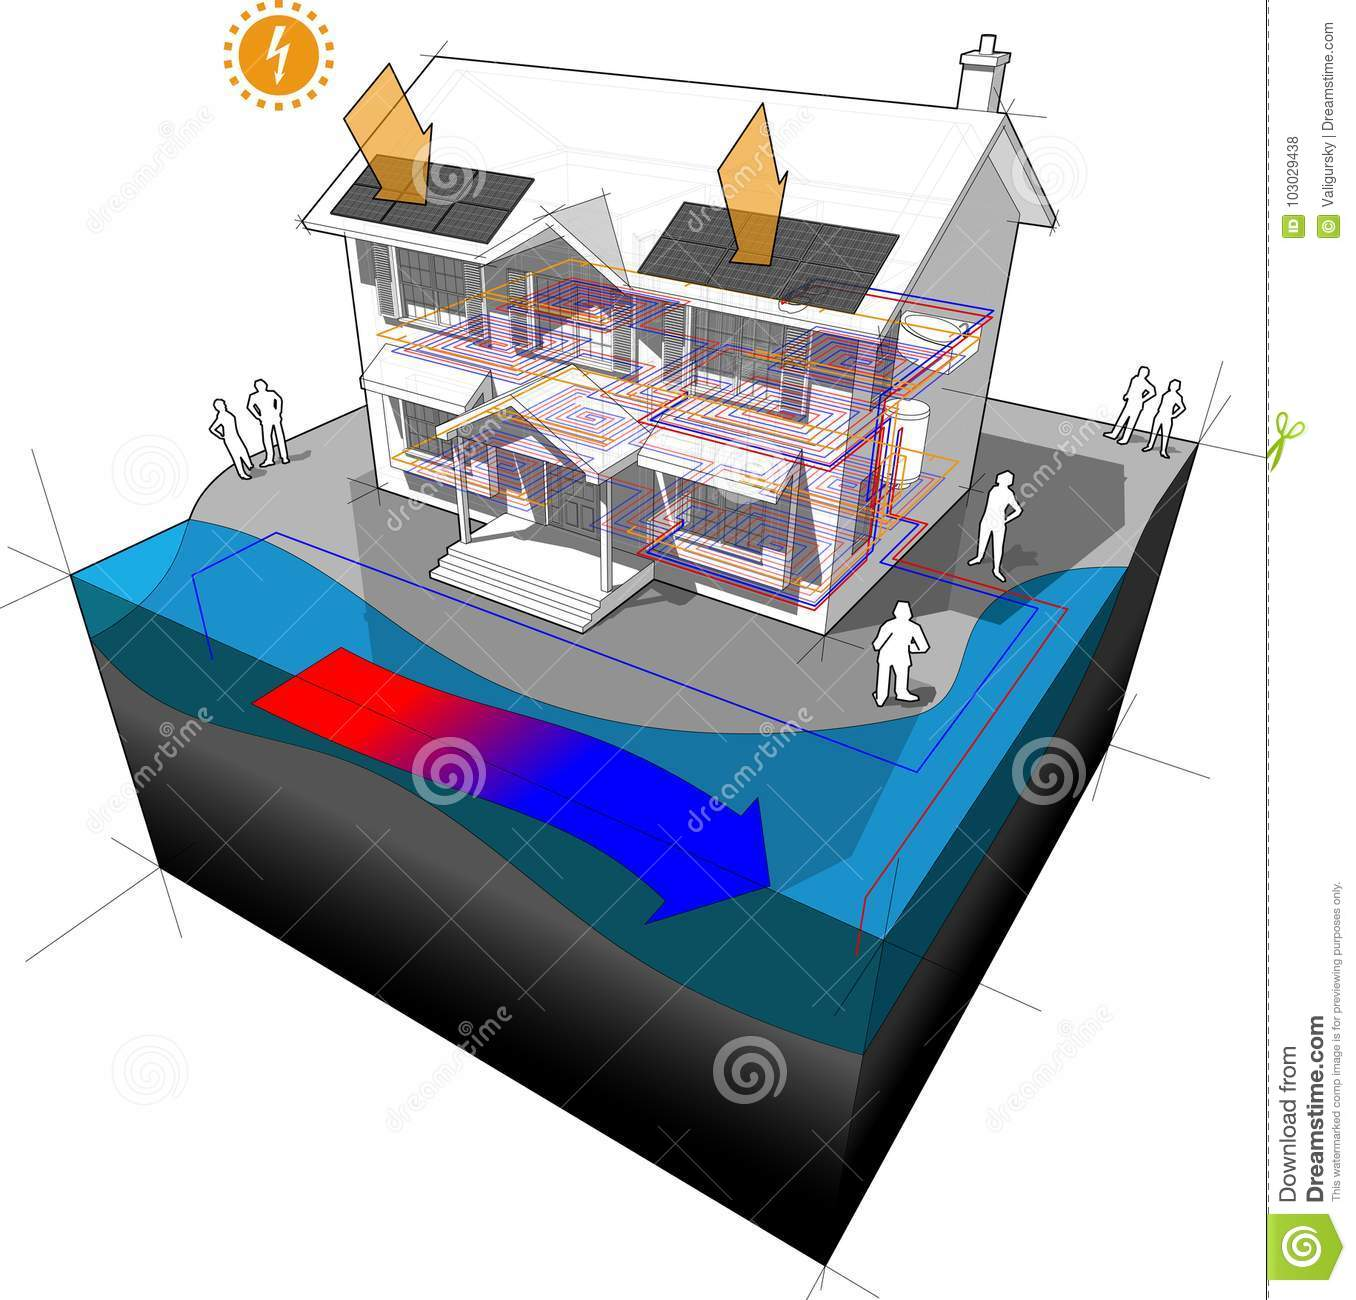 Surface Water Heat Pump And Photovoltaic Panels House Diagram Stock